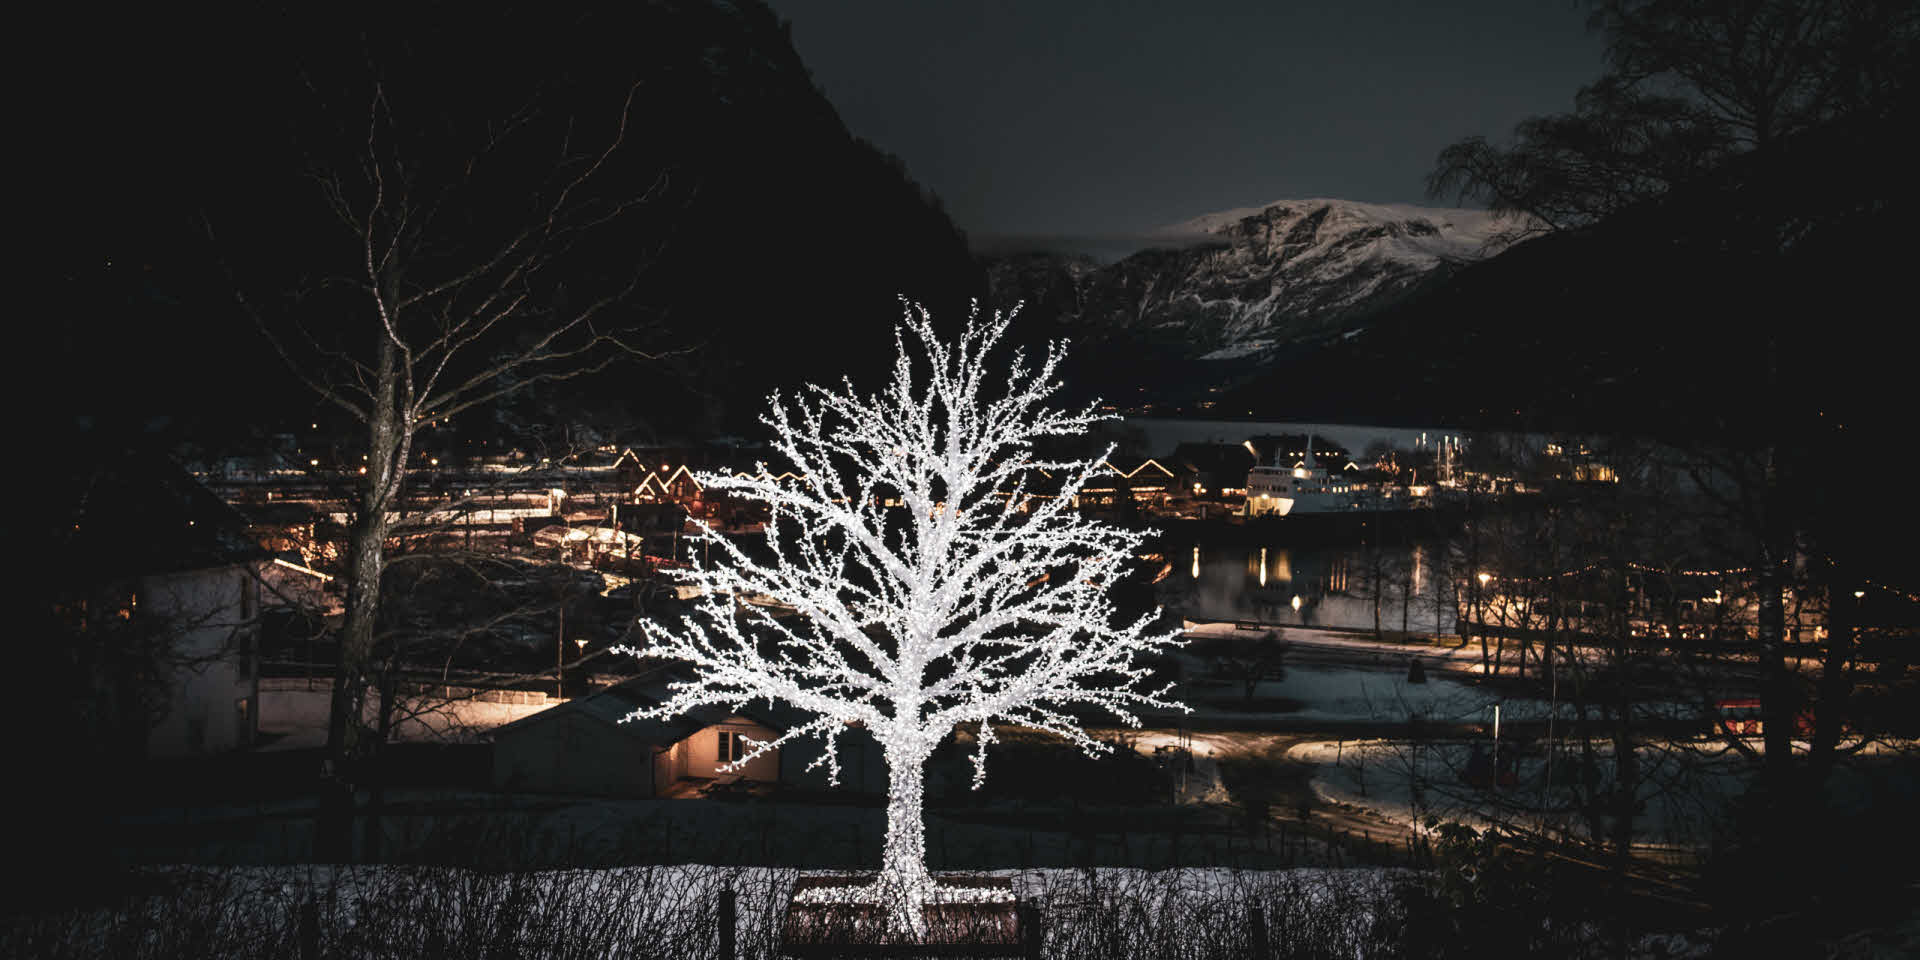 A decorative light tree in front with Flåm and snowy mountain peak in the background